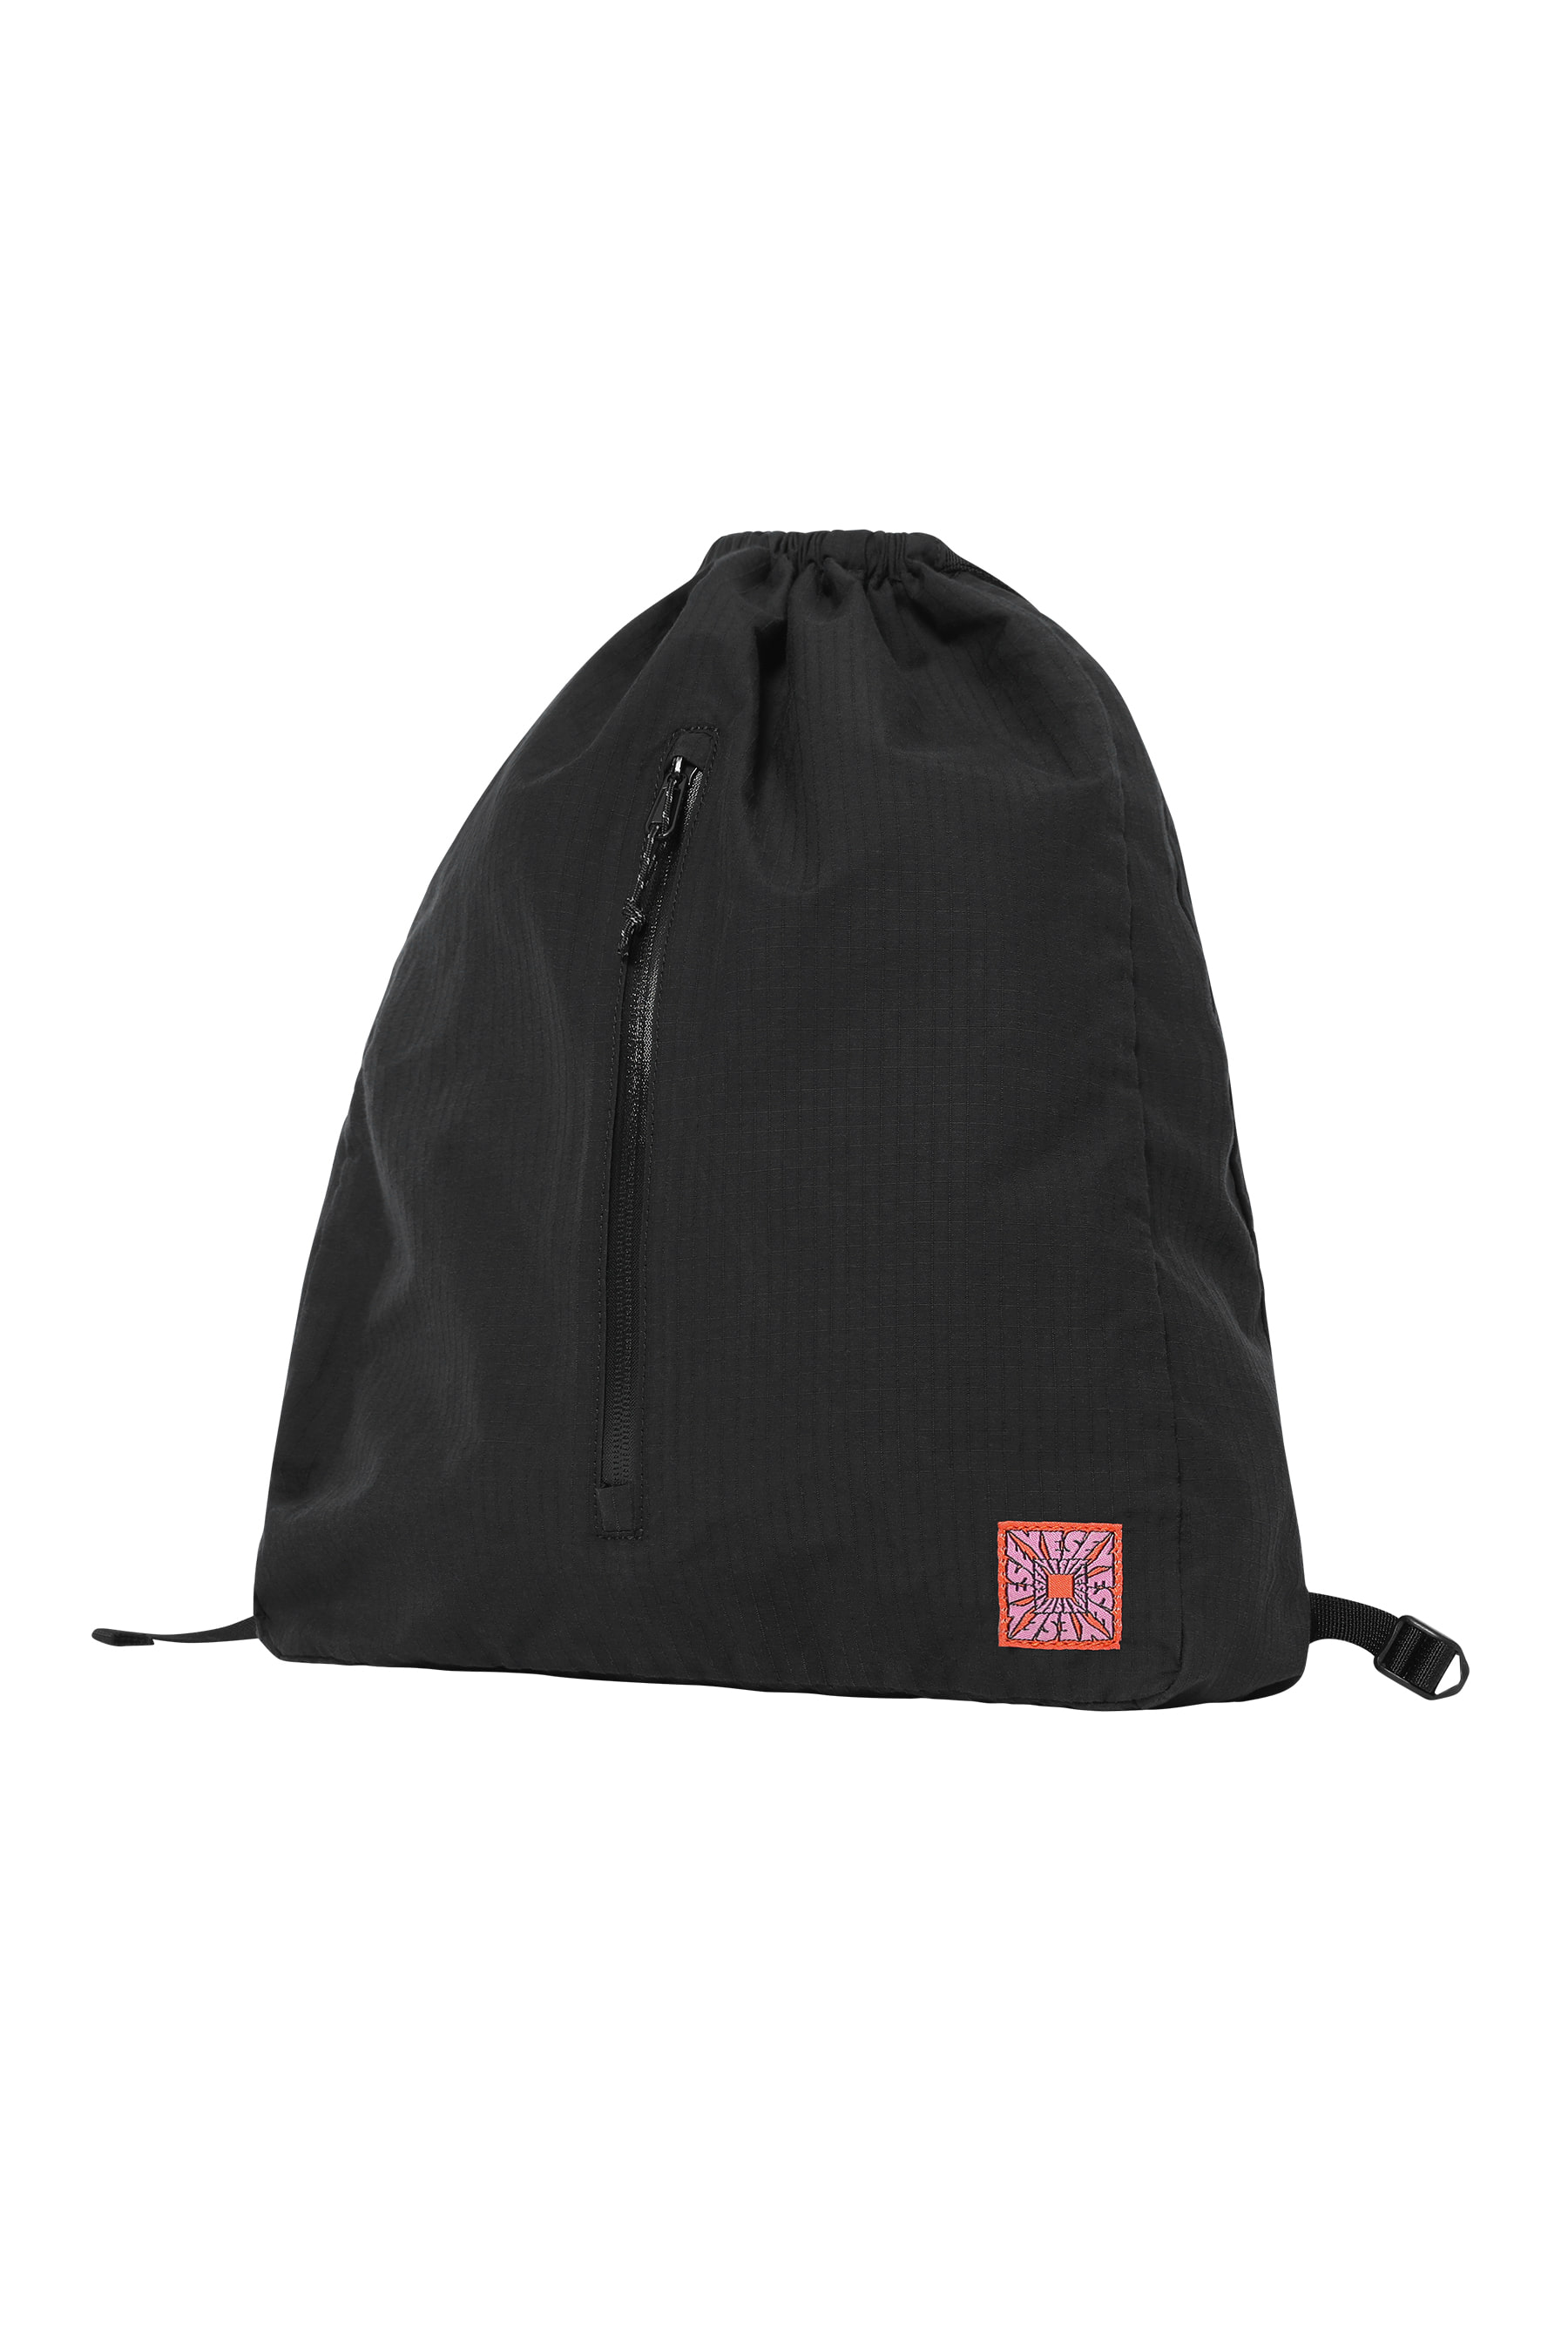 Y.E.S Gym Sack Black